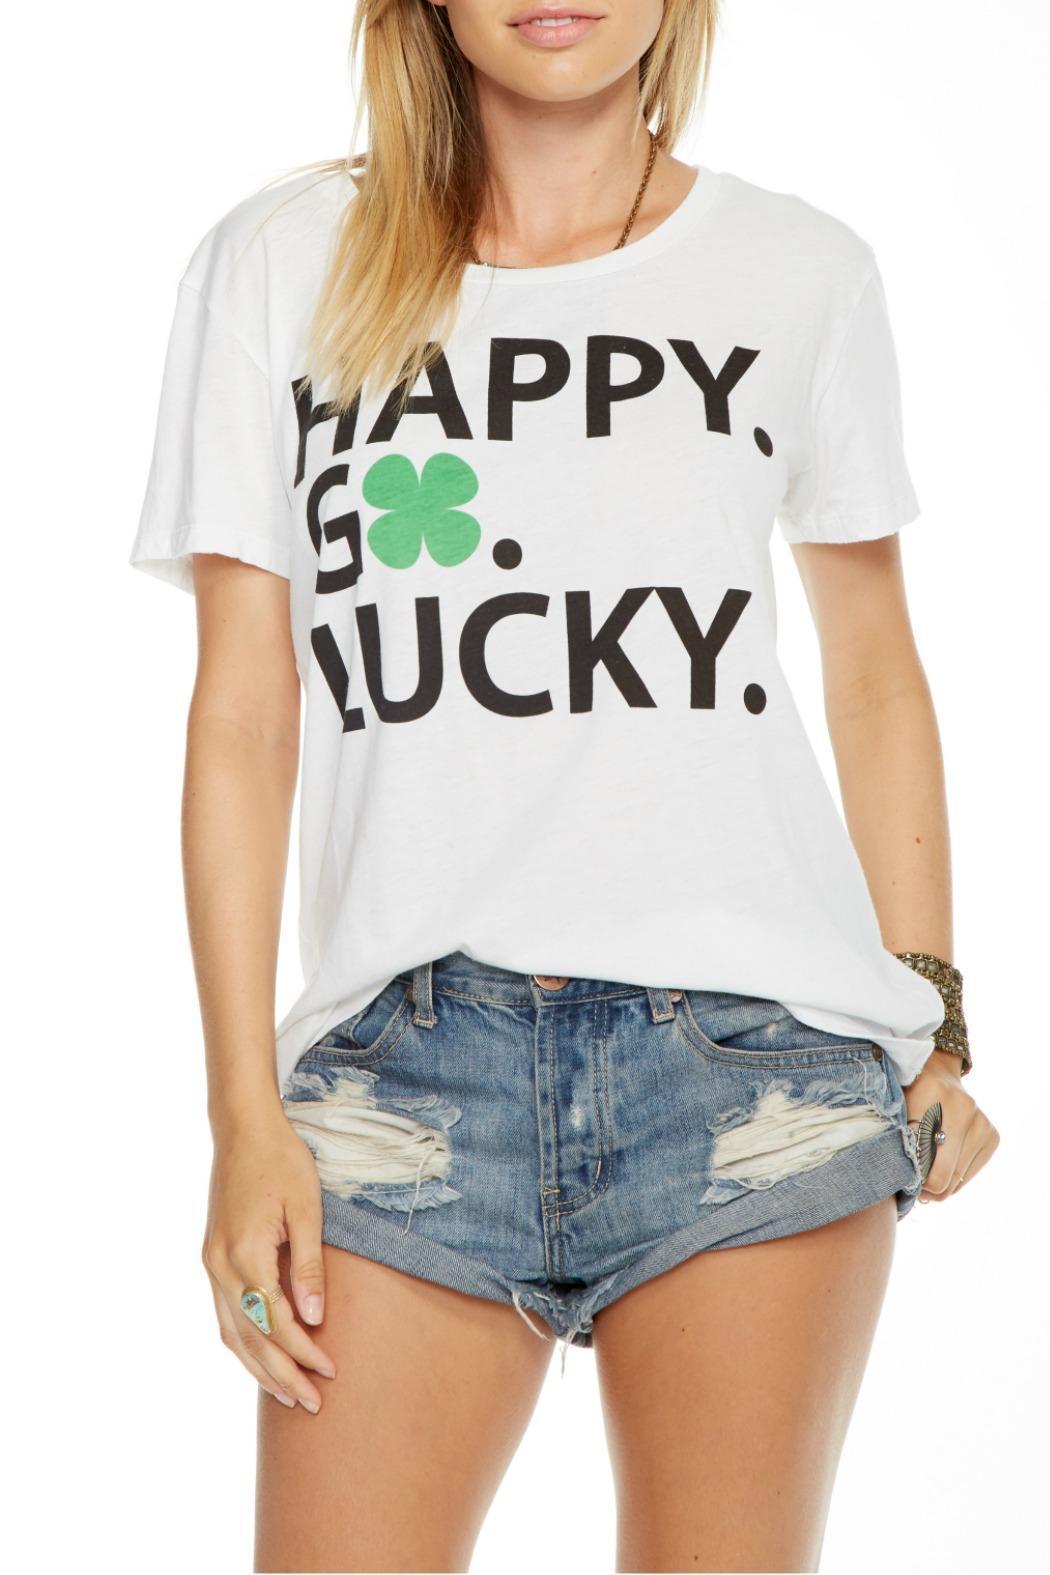 9e04c59c Chaser Happy Go Lucky Tee from Las Vegas by R+D — Shoptiques